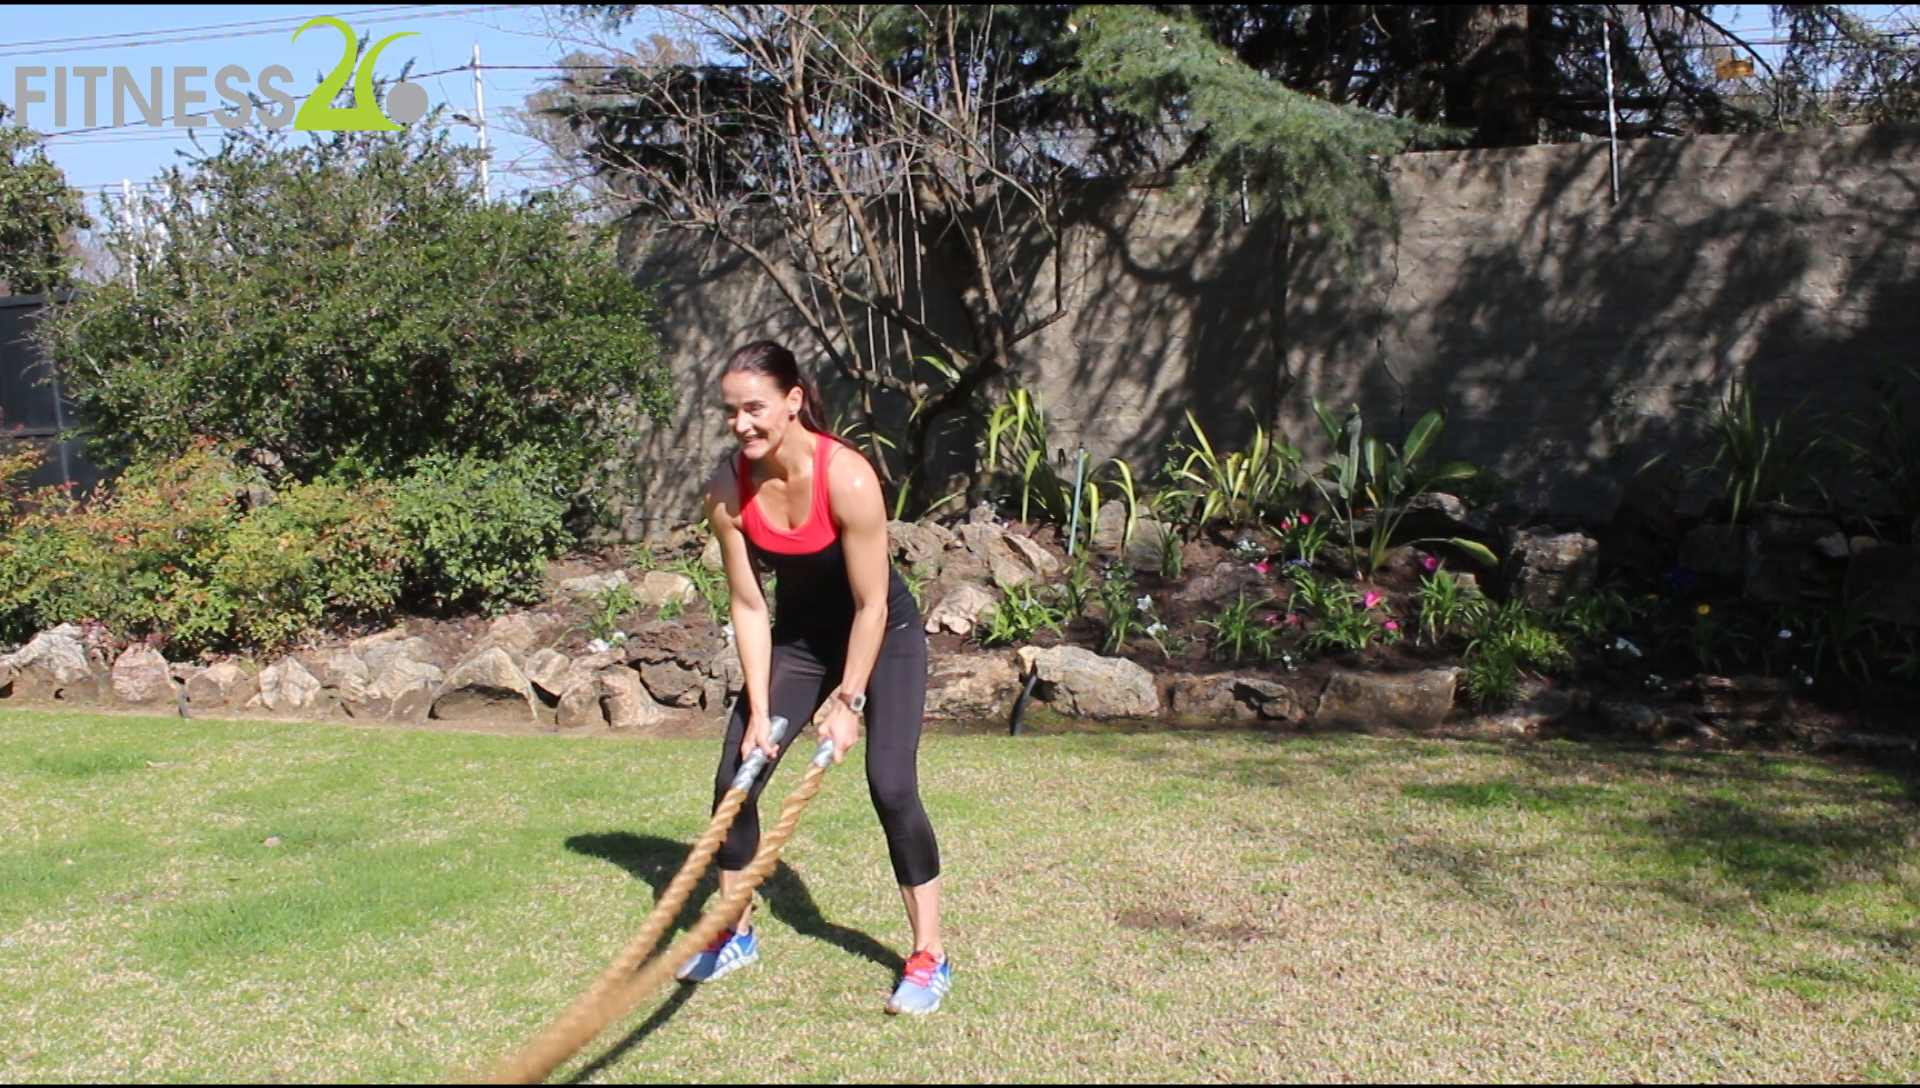 Lara – Fullbody Workout using a battle rope: Intermediate